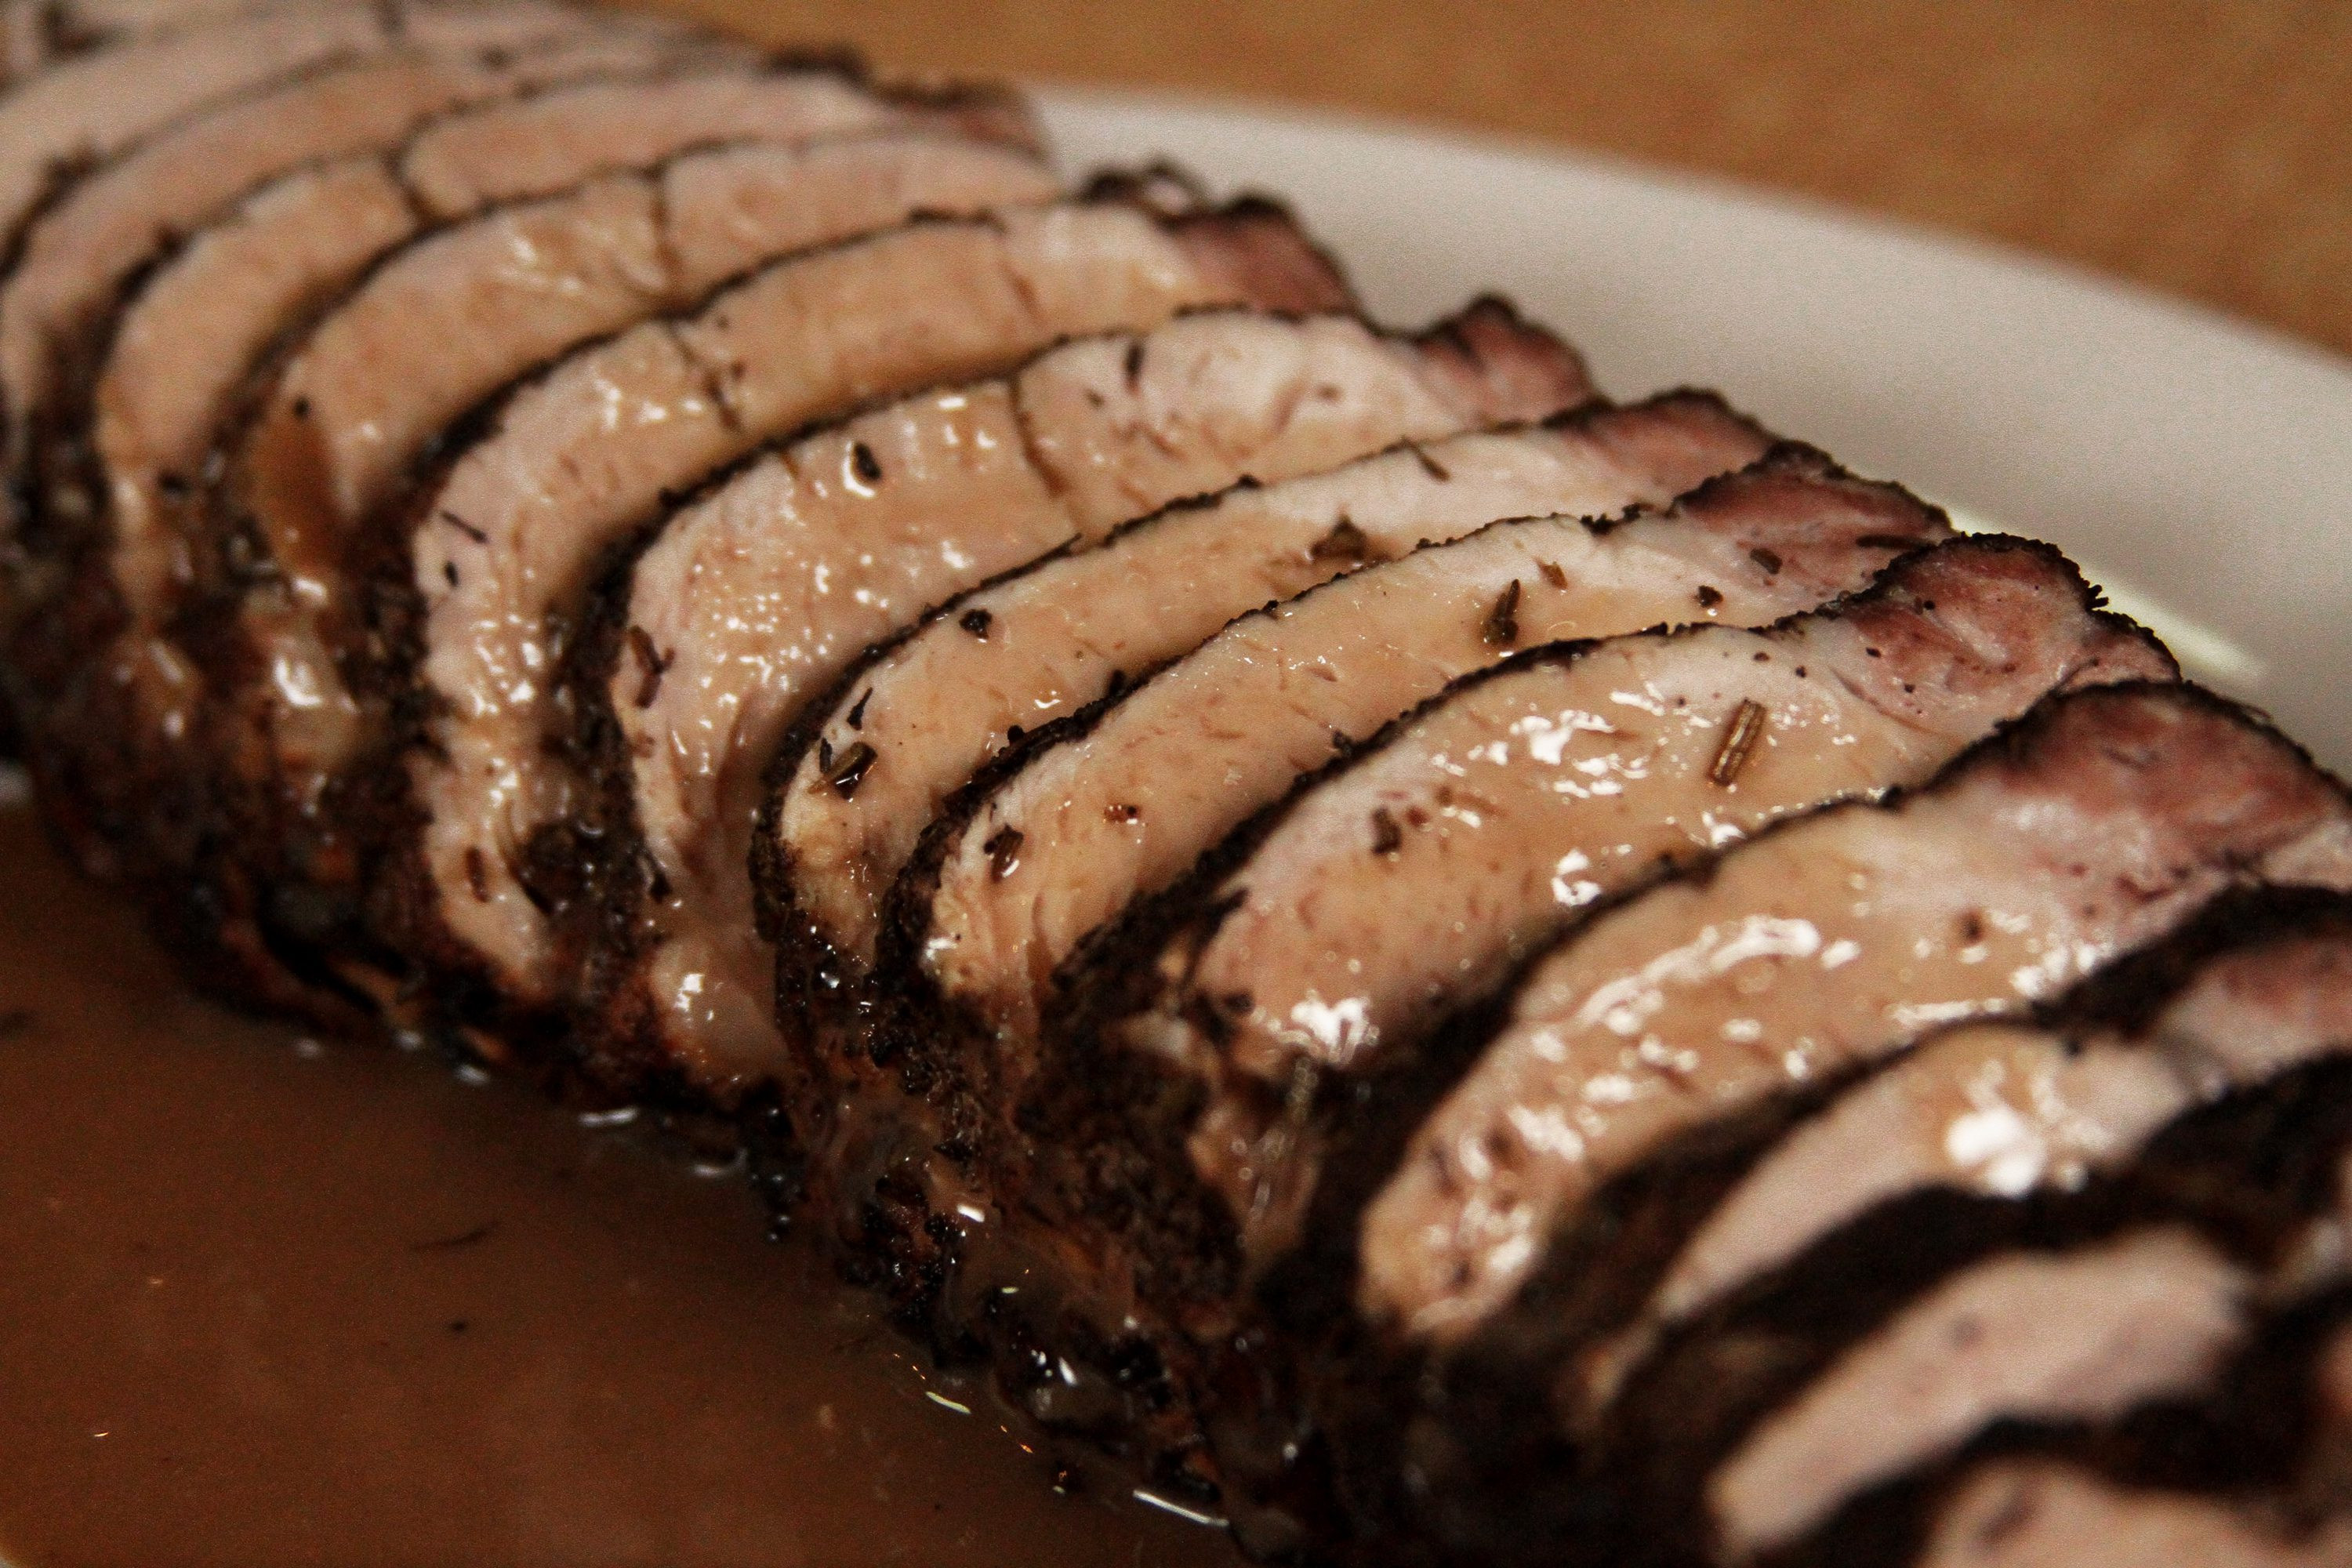 Cook Pork Loin  How to Cook a Pork Loin Roast in a Crock Pot with